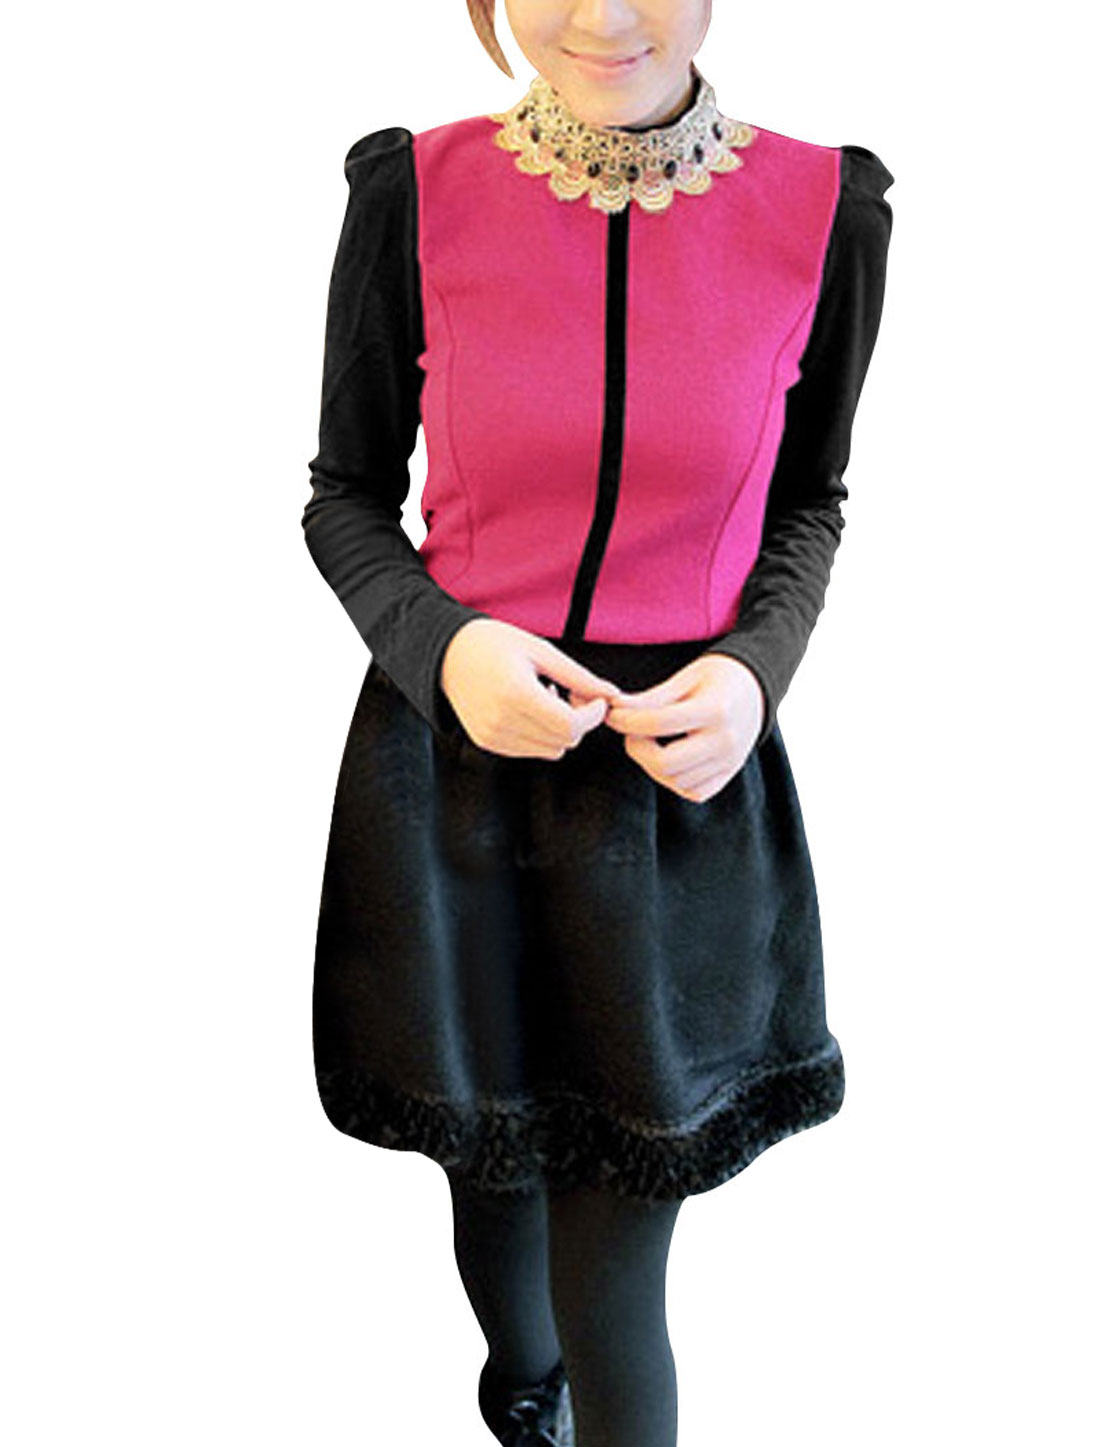 Ladies Fuchsia Black Puff Sleeves Casual Zip Closure Back Shirt XS